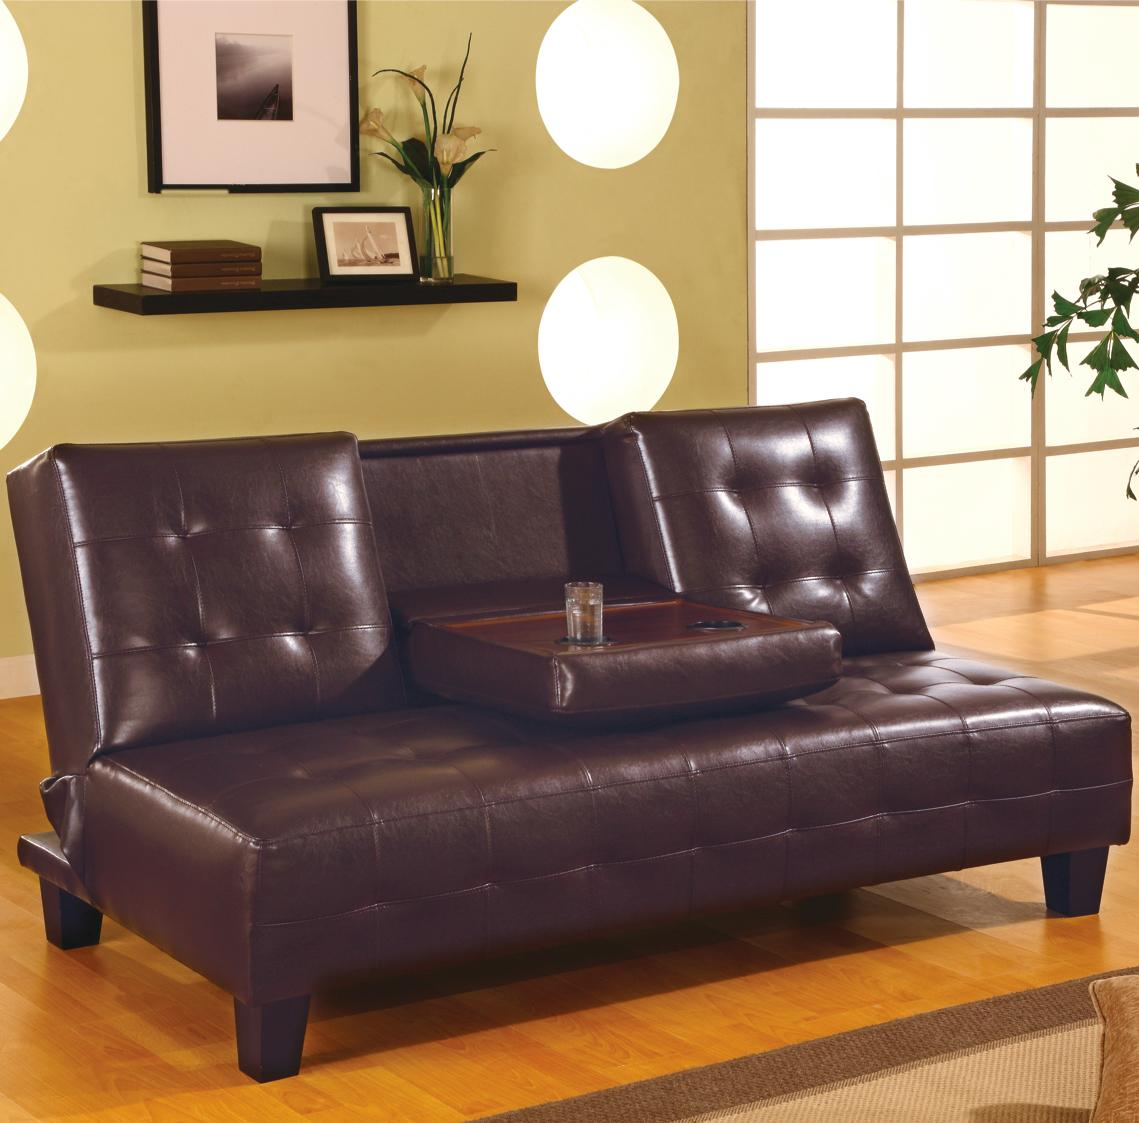 Wondrous Cappuccino Futon Priced To Go Furniture Machost Co Dining Chair Design Ideas Machostcouk